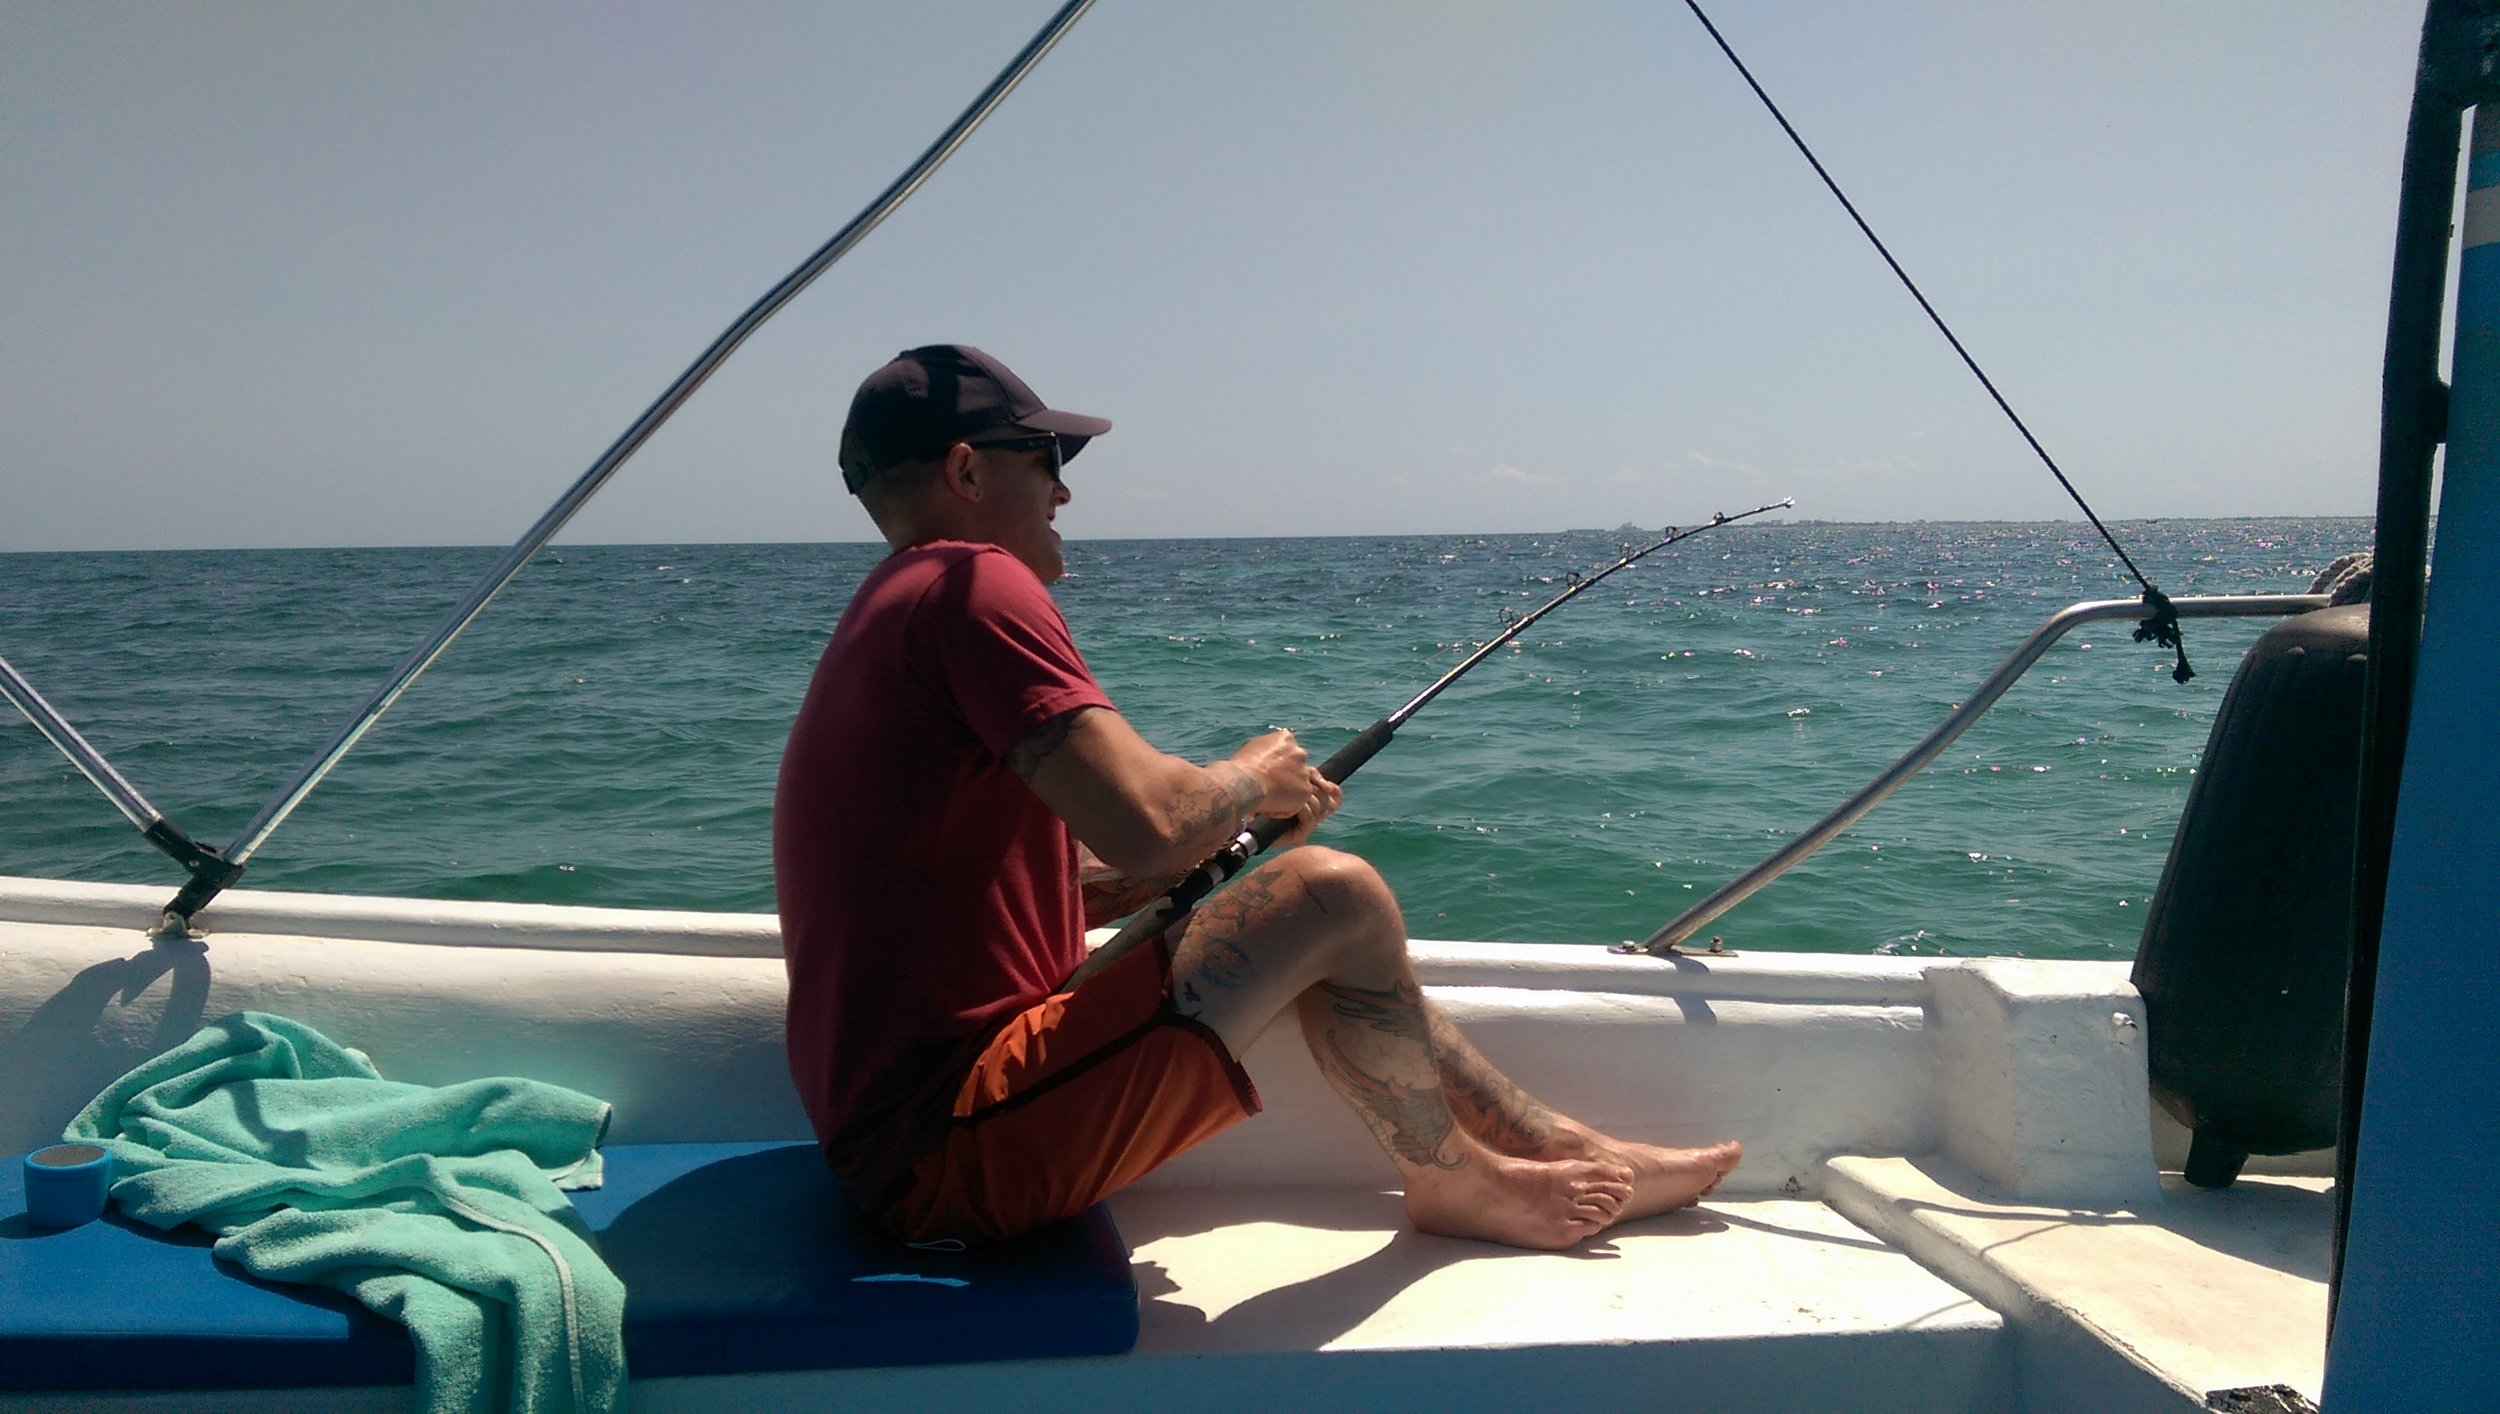 Doing some fishing in Mexico!